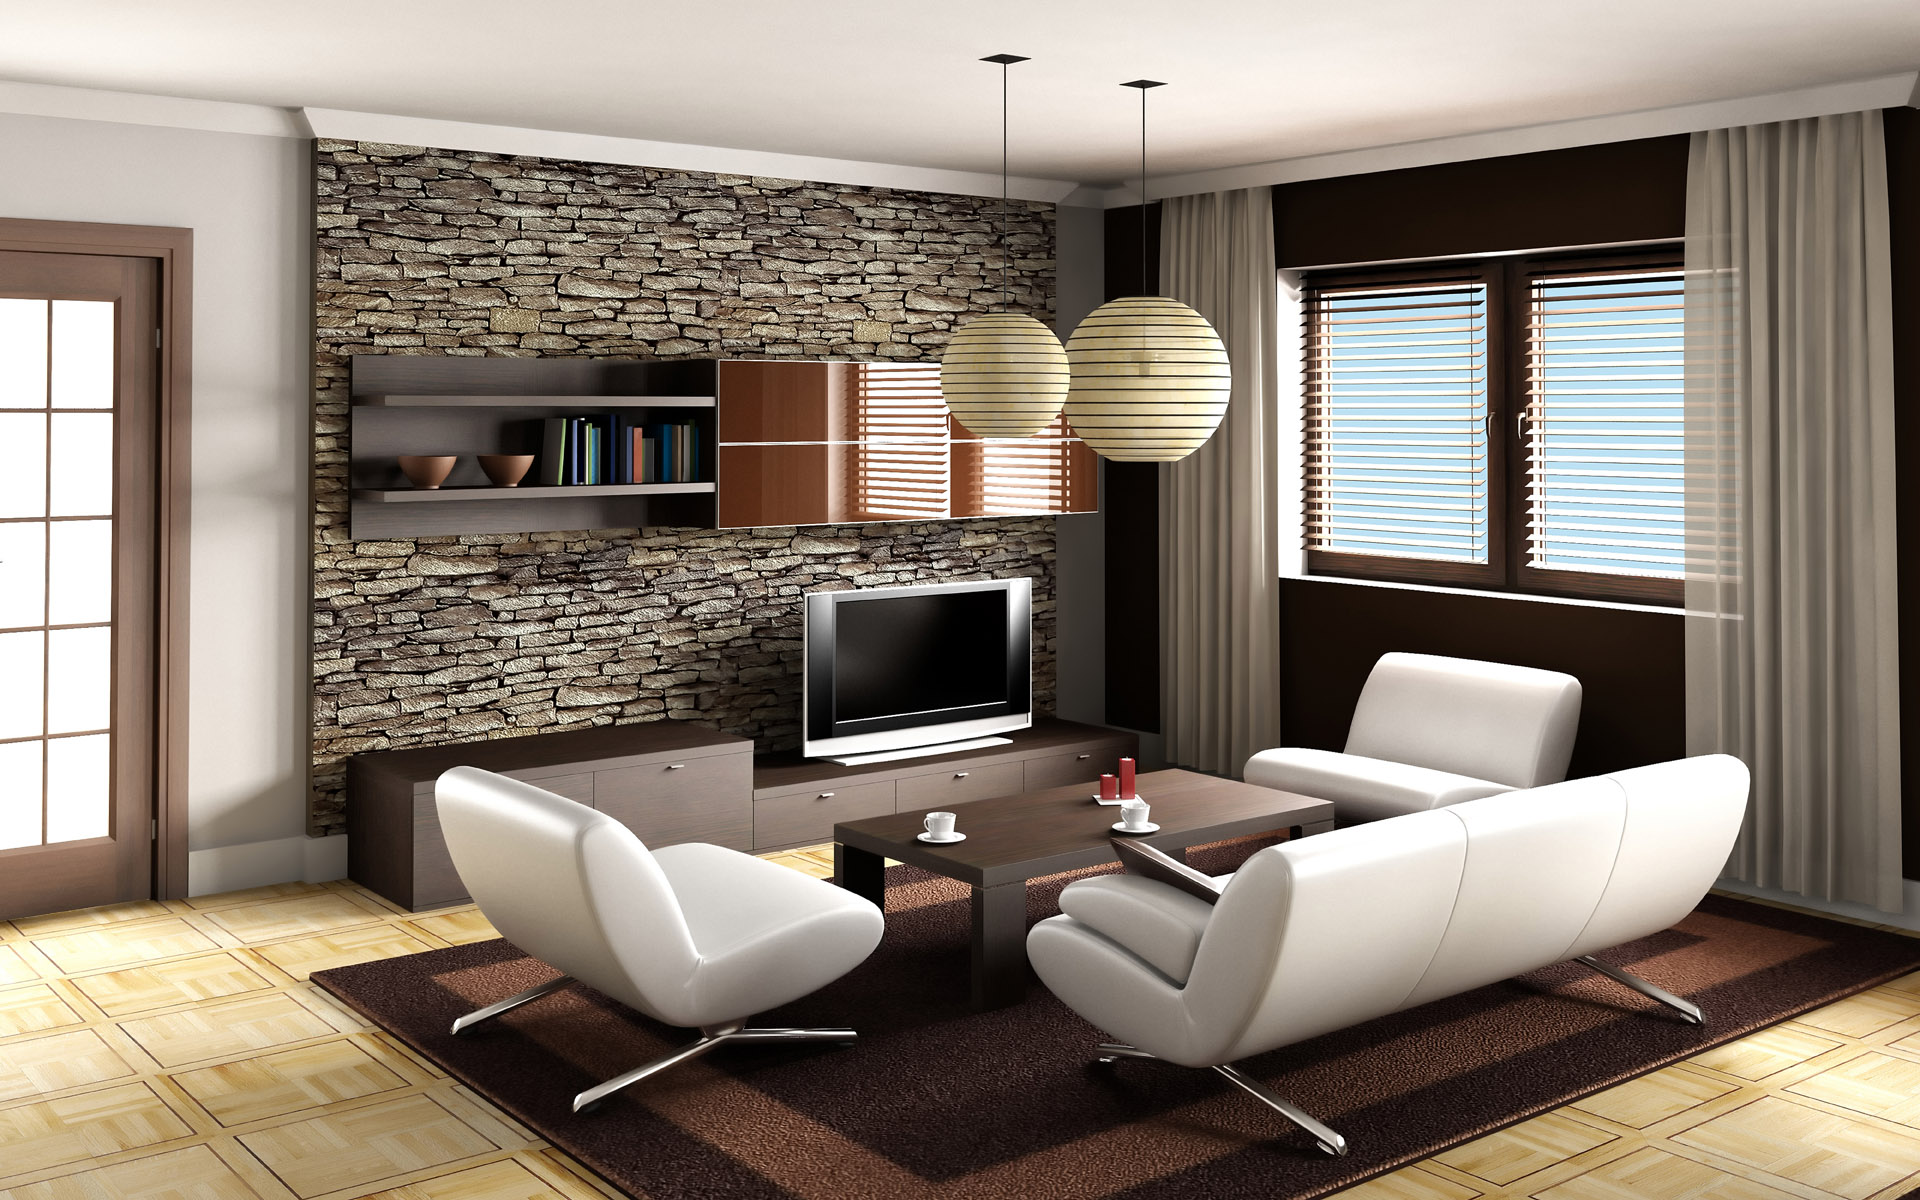 7 tips to decorate your living room worthily for Decorate my living room